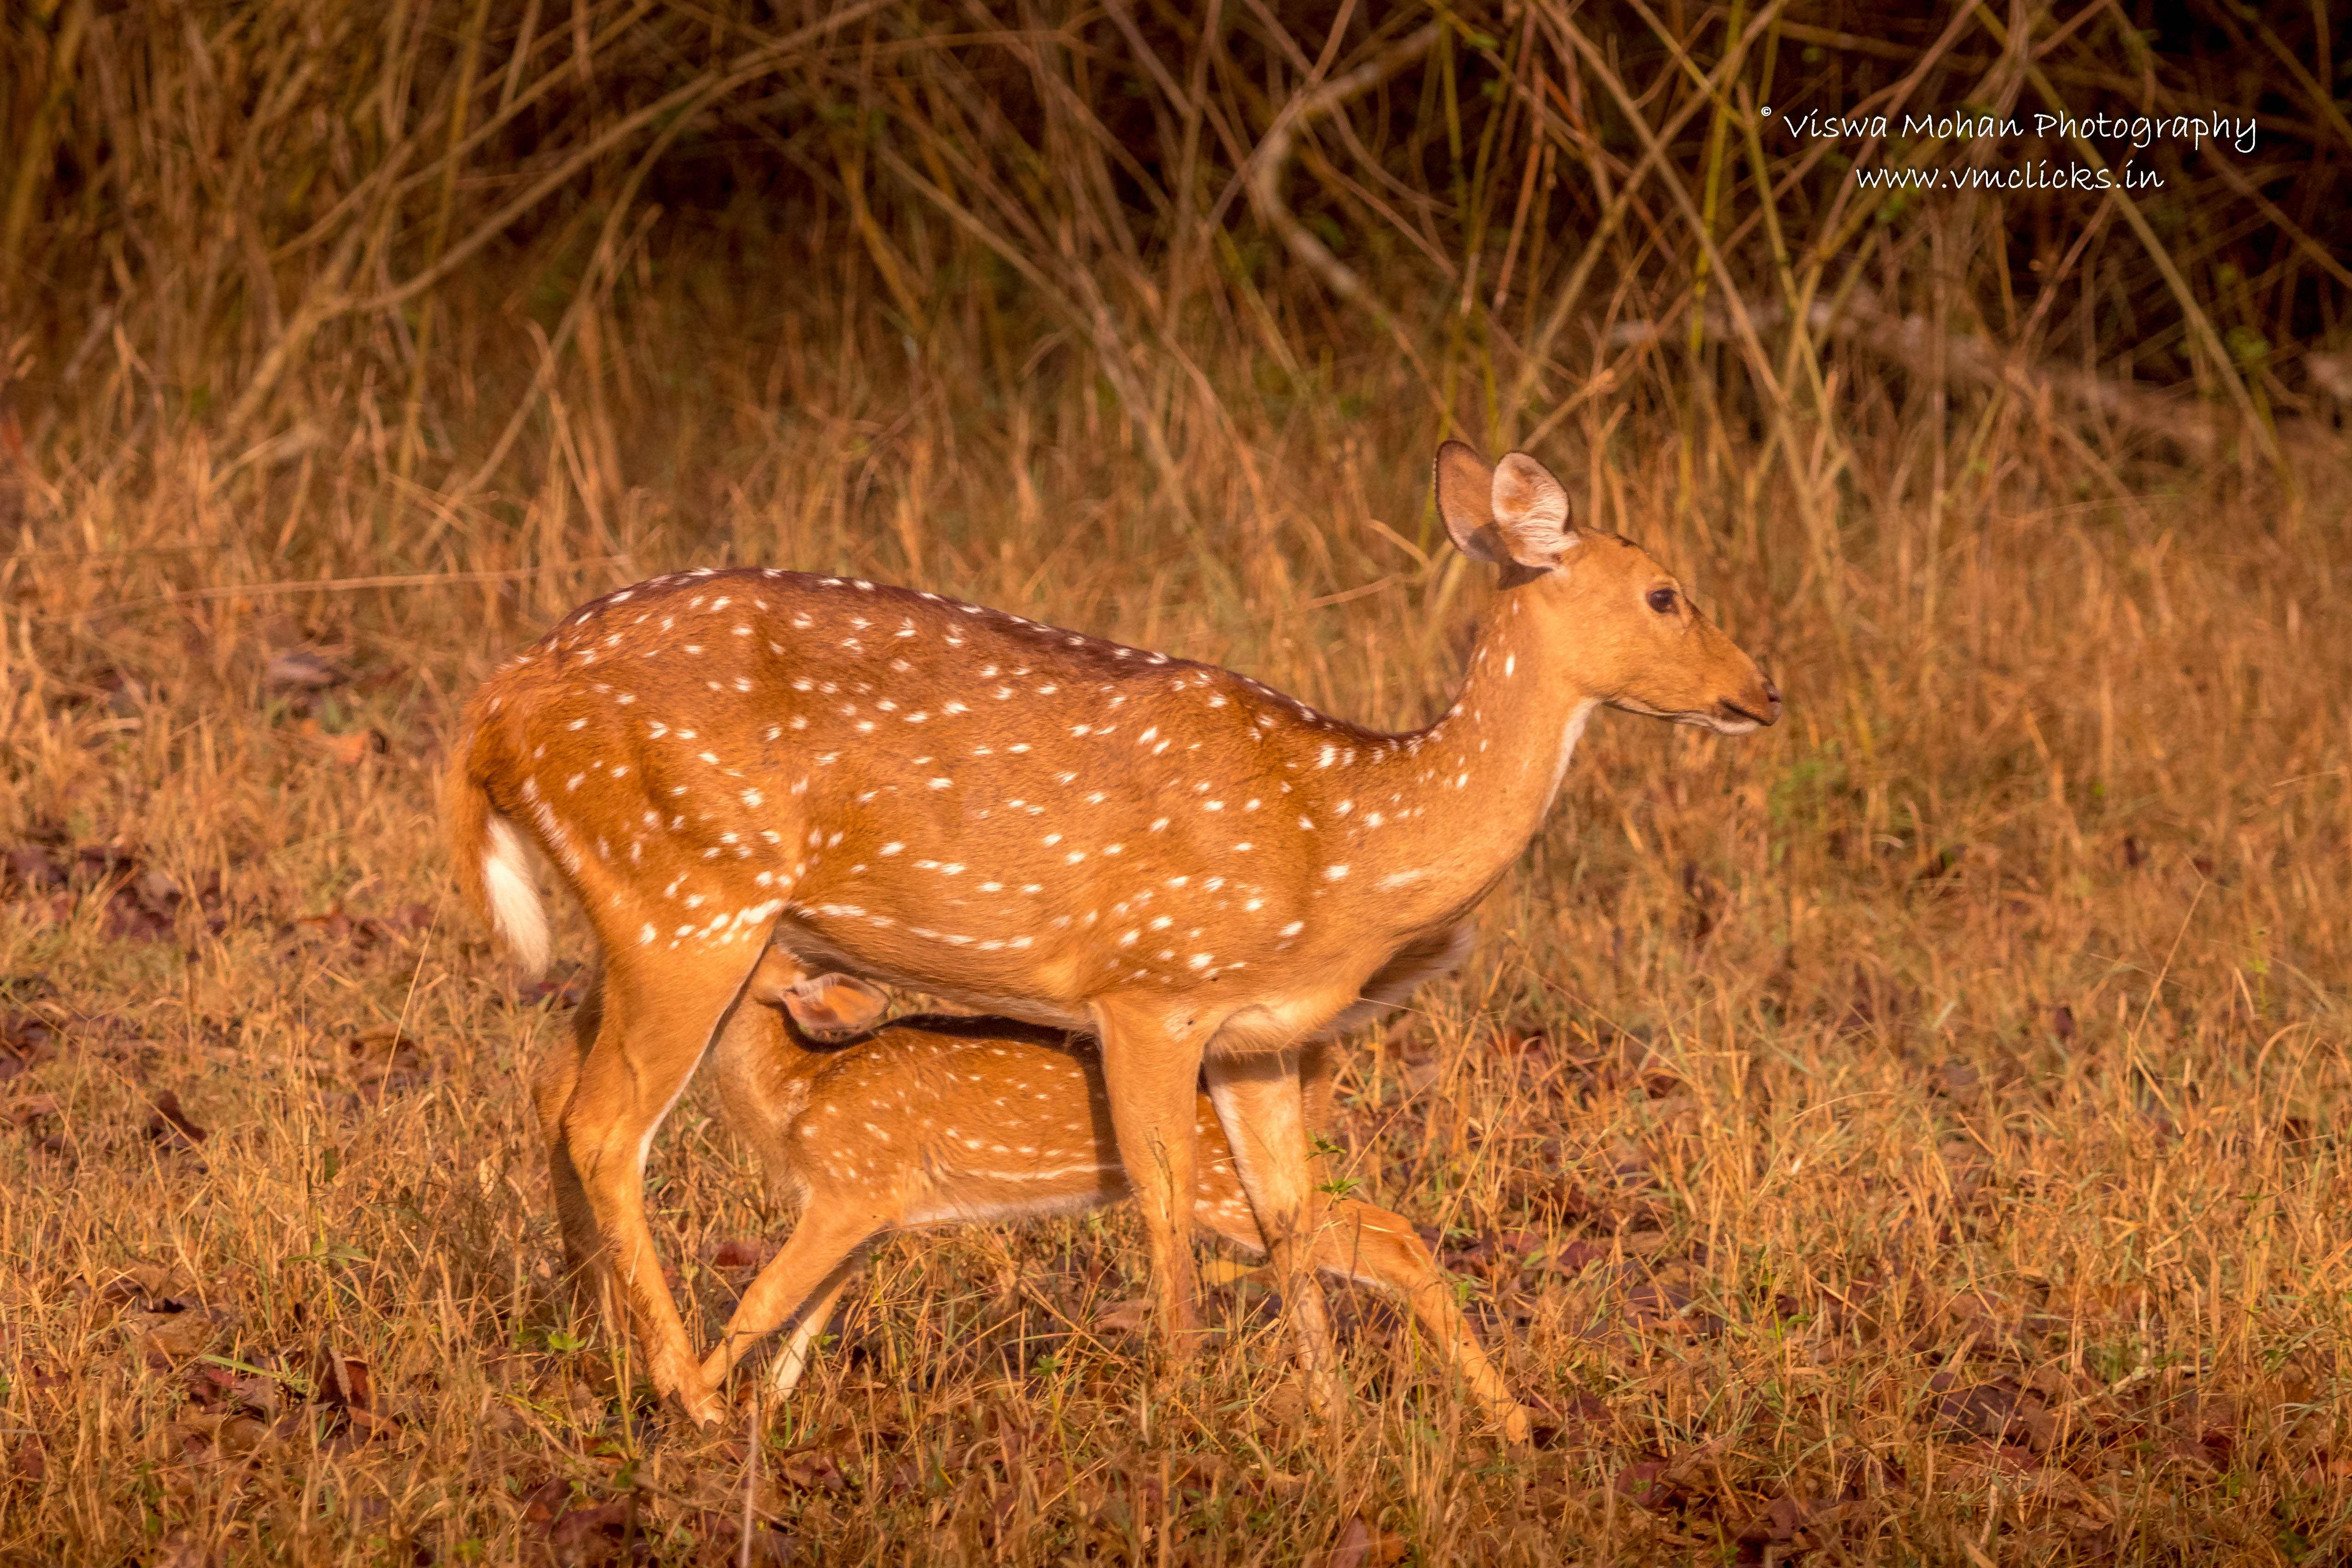 Spotted Deer Feeding Her Baby